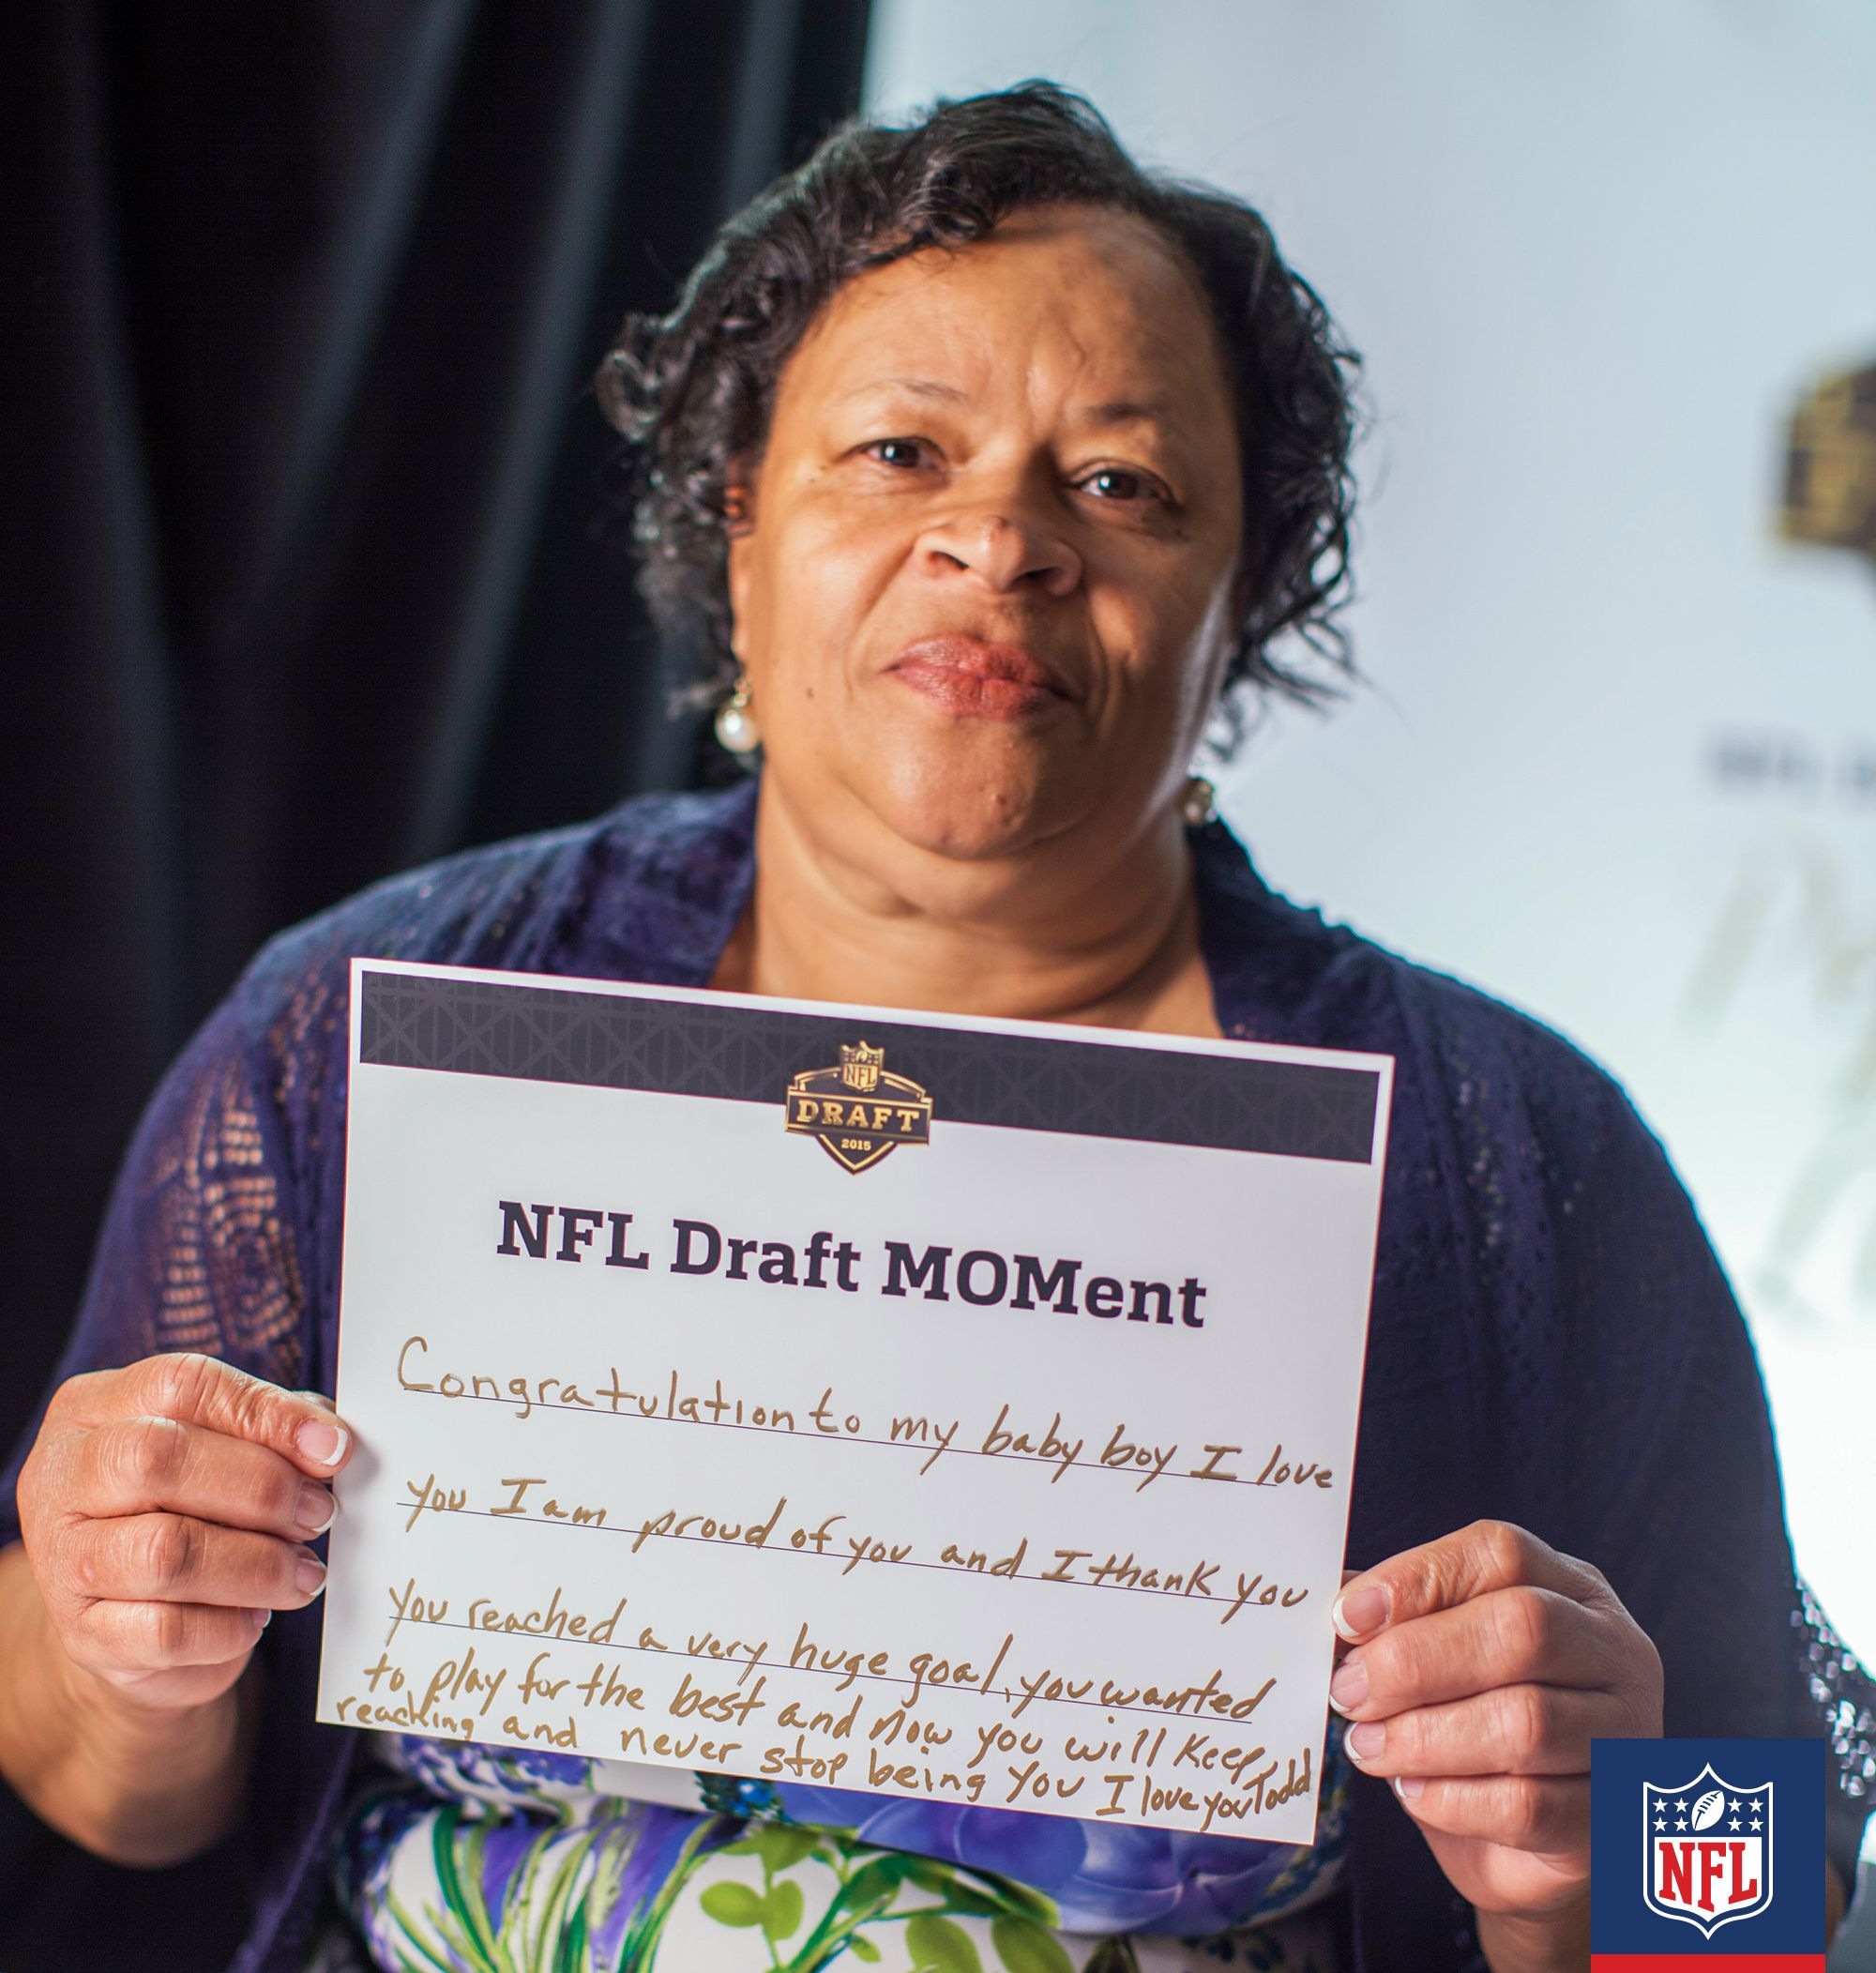 New St Louis Rams Rb Todd Gurley Can Focus On Making The City Of St Louis Proud As It S Clear Mama Darlene Is Already One Ha Nfl Players Pep Talks Nfl